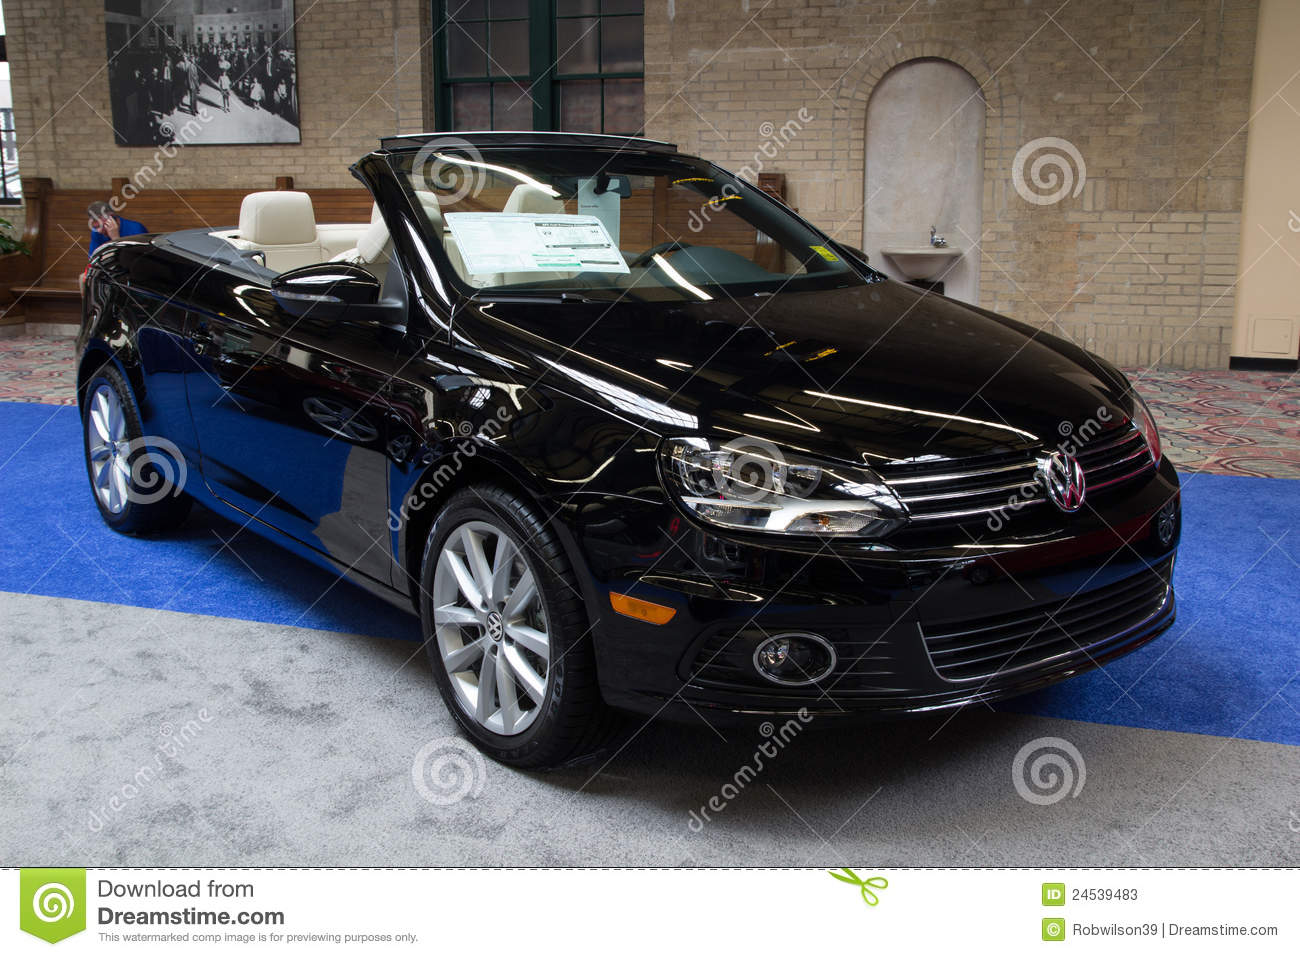 VW Eos Komfort Editorial Stock Photo Image Of Volks - Eos car show